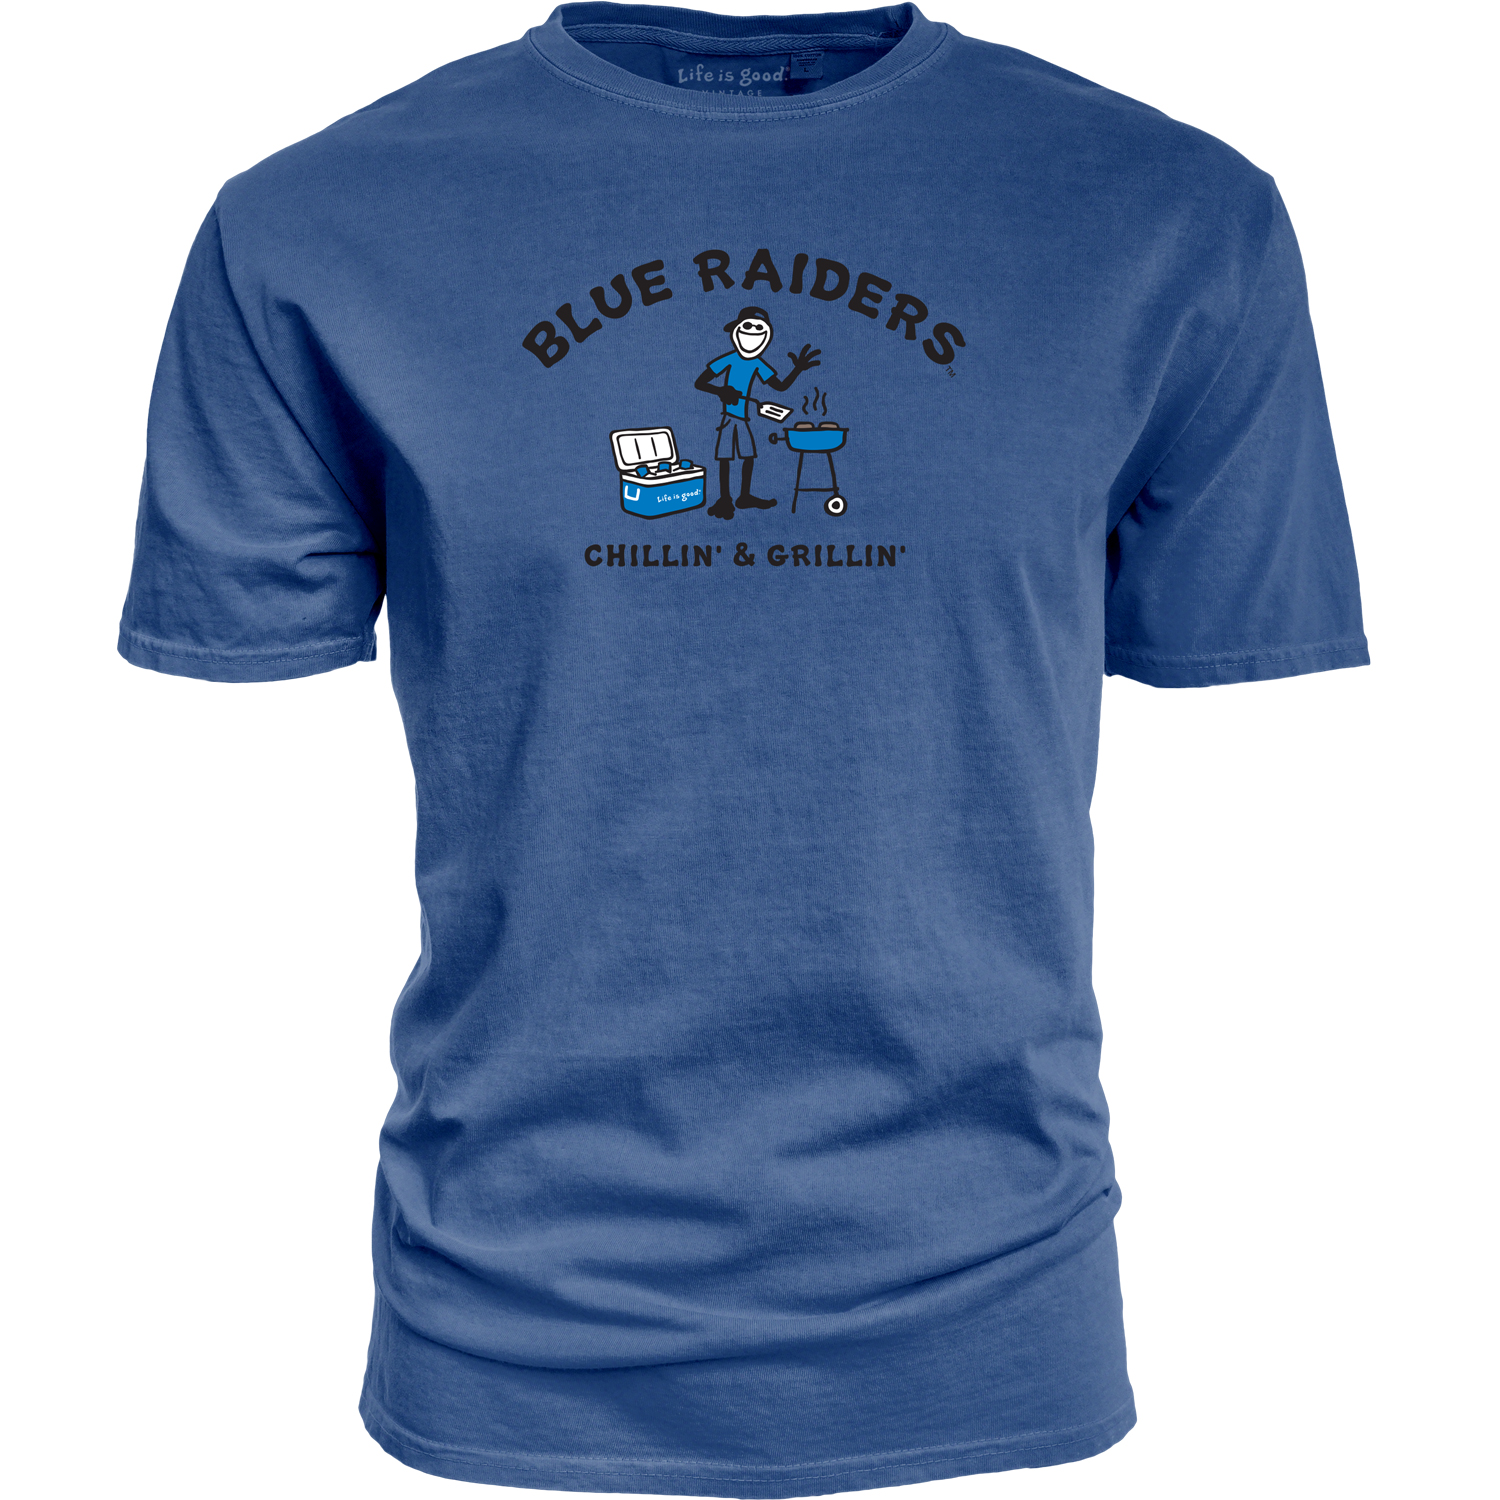 Blue Raiders Chillin' & Grillin' Life is Good® Dyed Ringspun Shirt